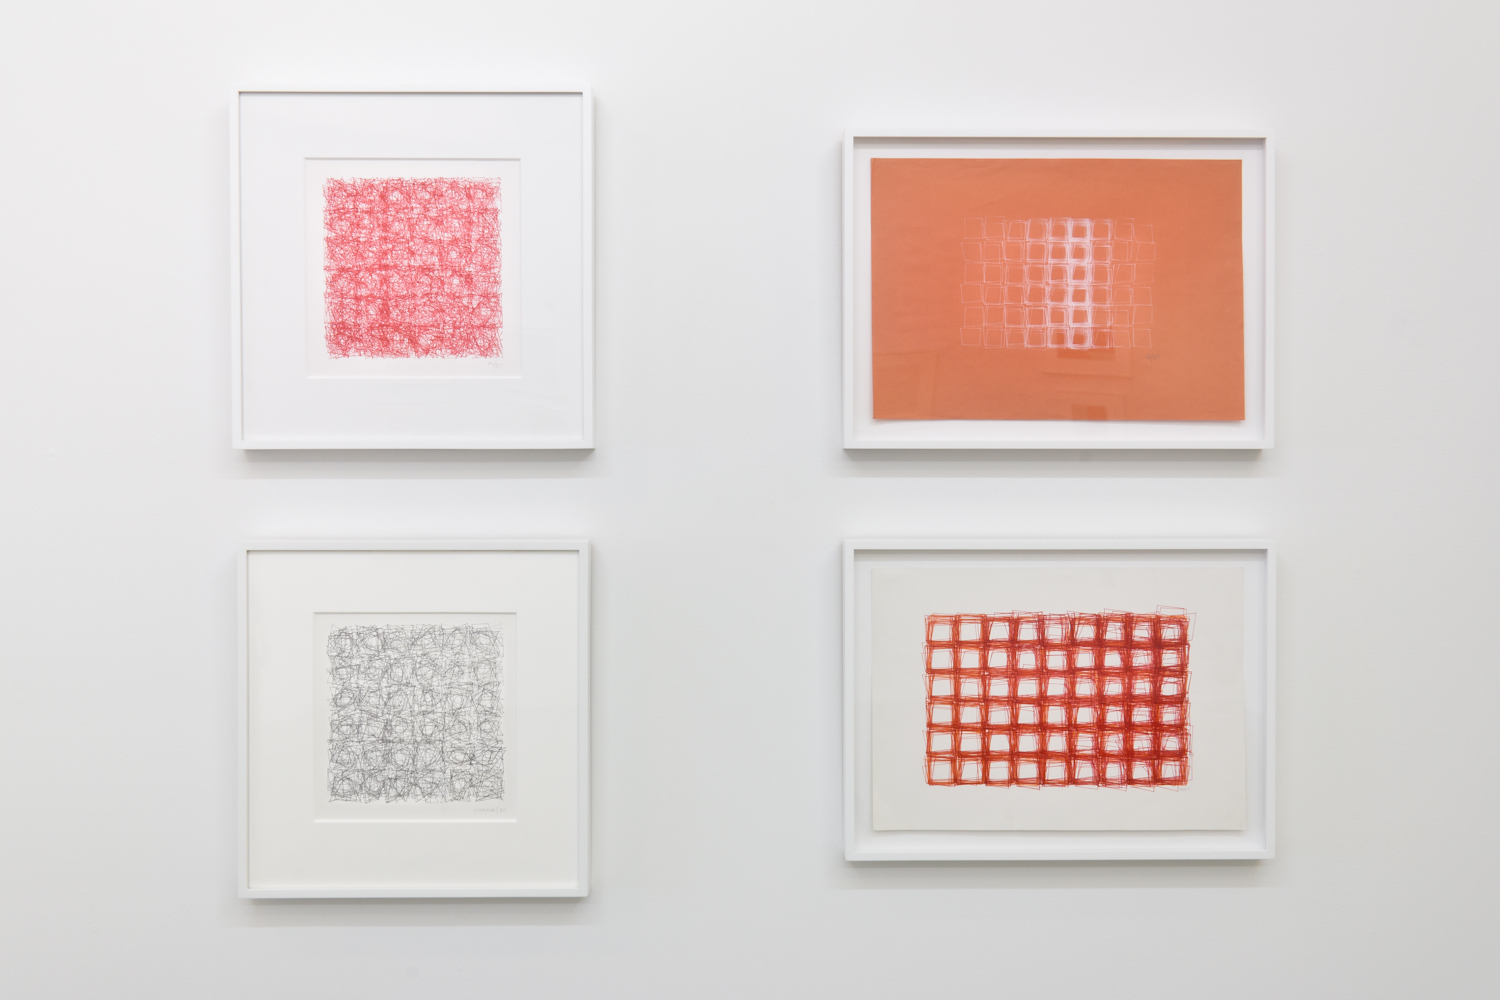 Installation View: Vera Molnar Drawings 1949 - 1986